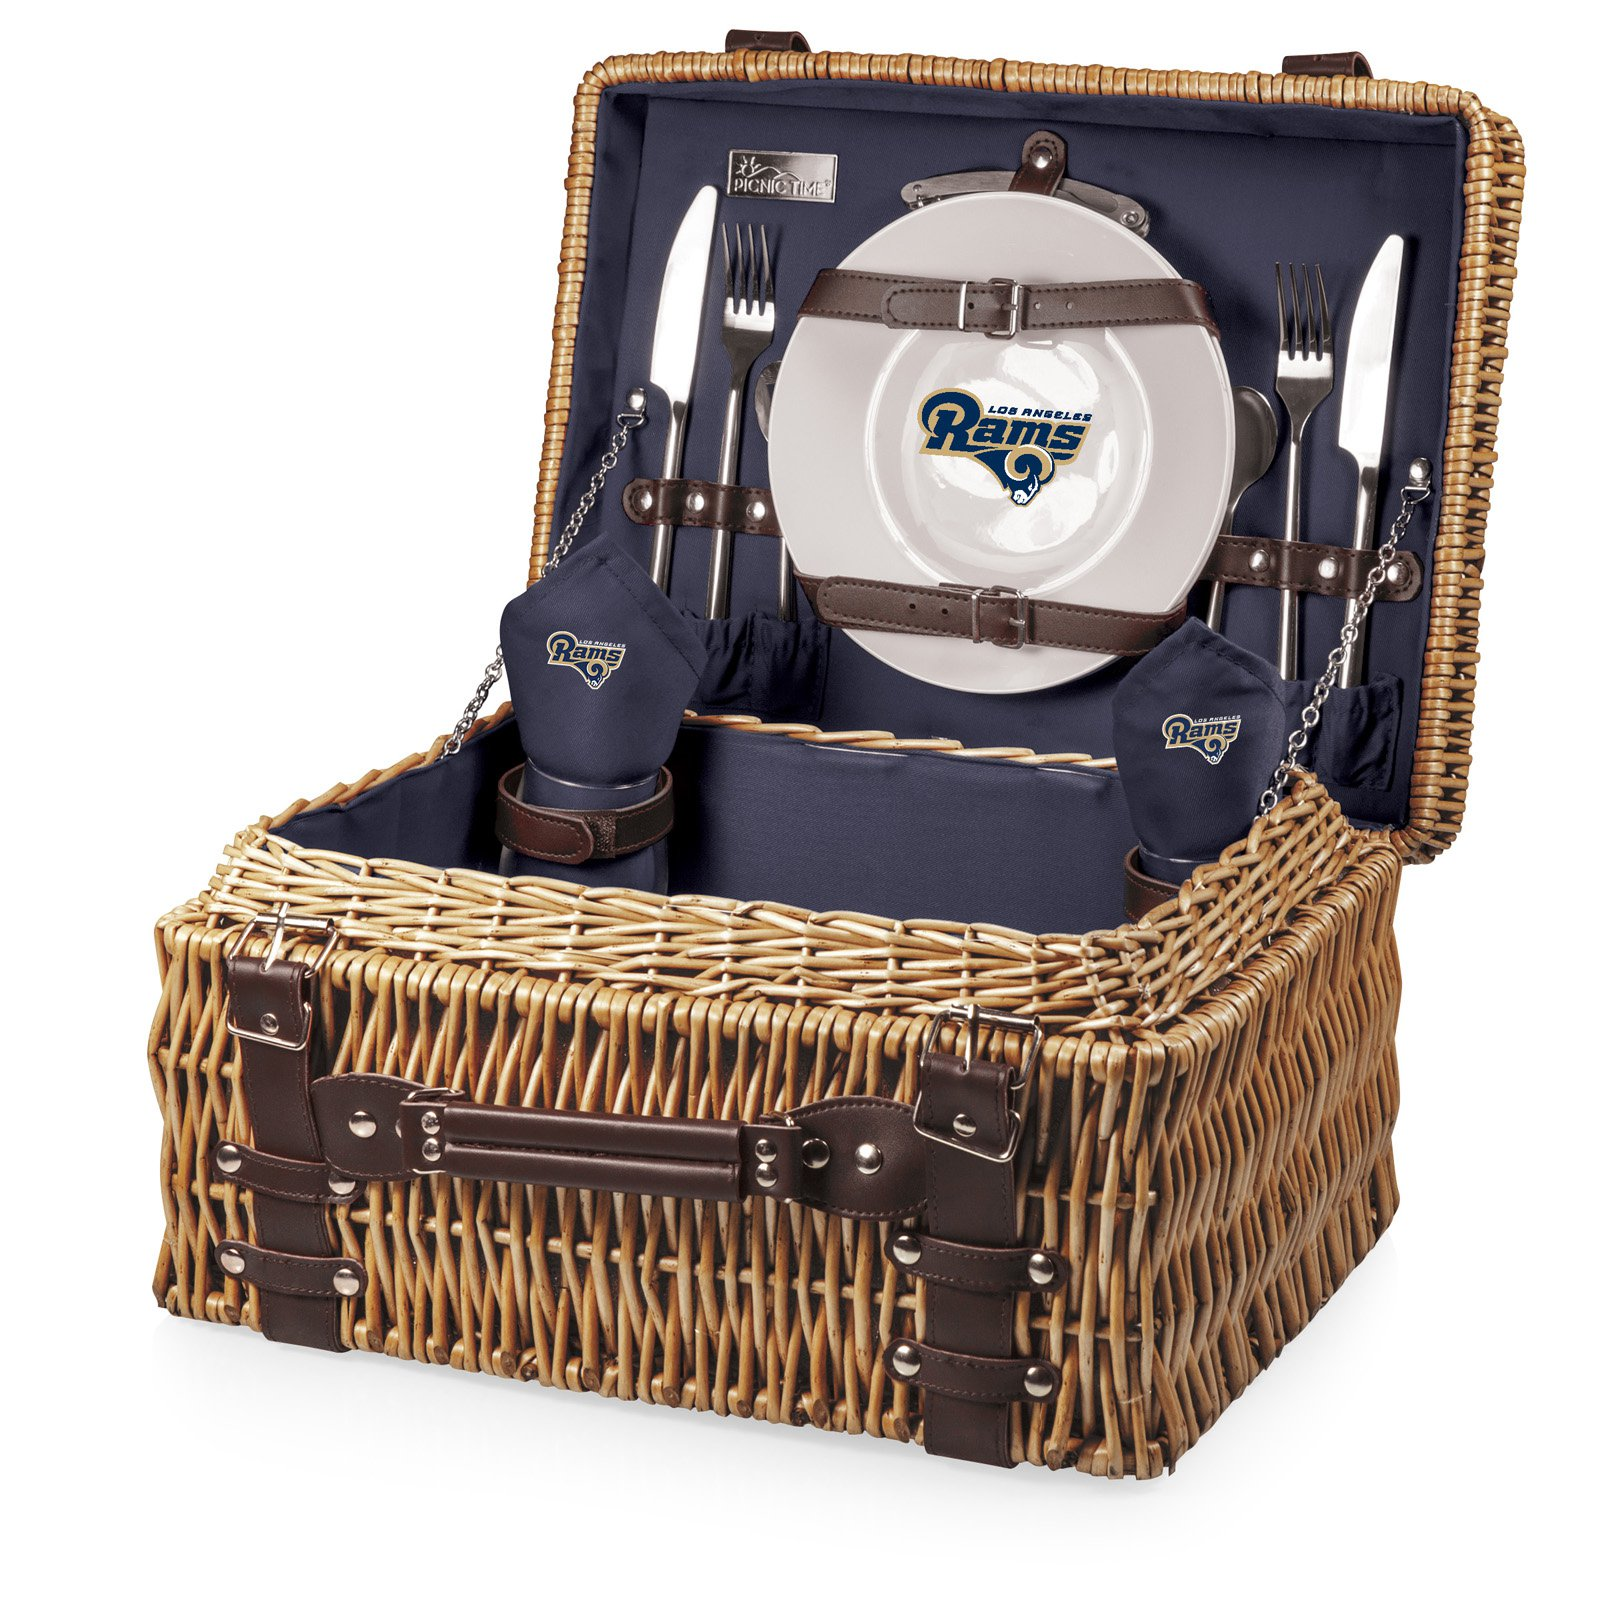 Picnic Time NFL Champion Picnic Basket by Picnic Time